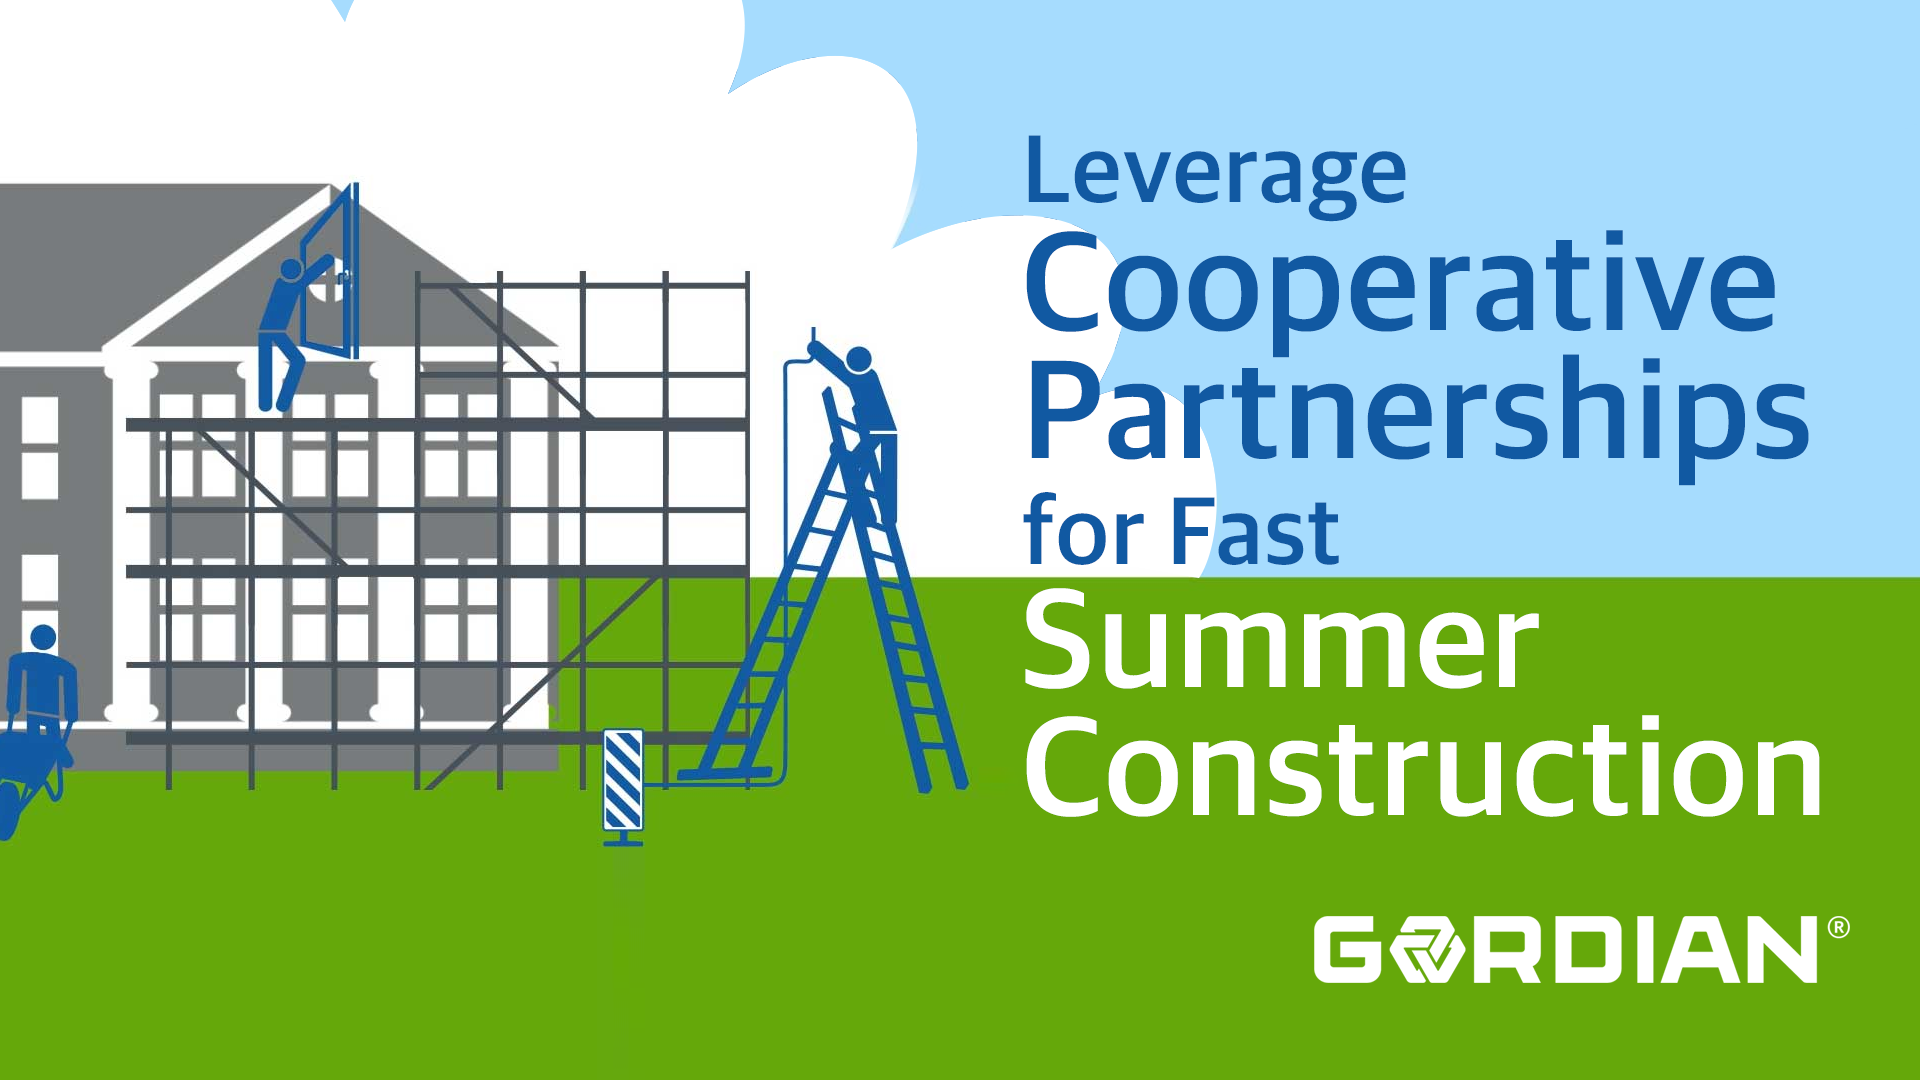 Expedite Summer Construction Projects with ezIQC<sup>&reg;</sup>